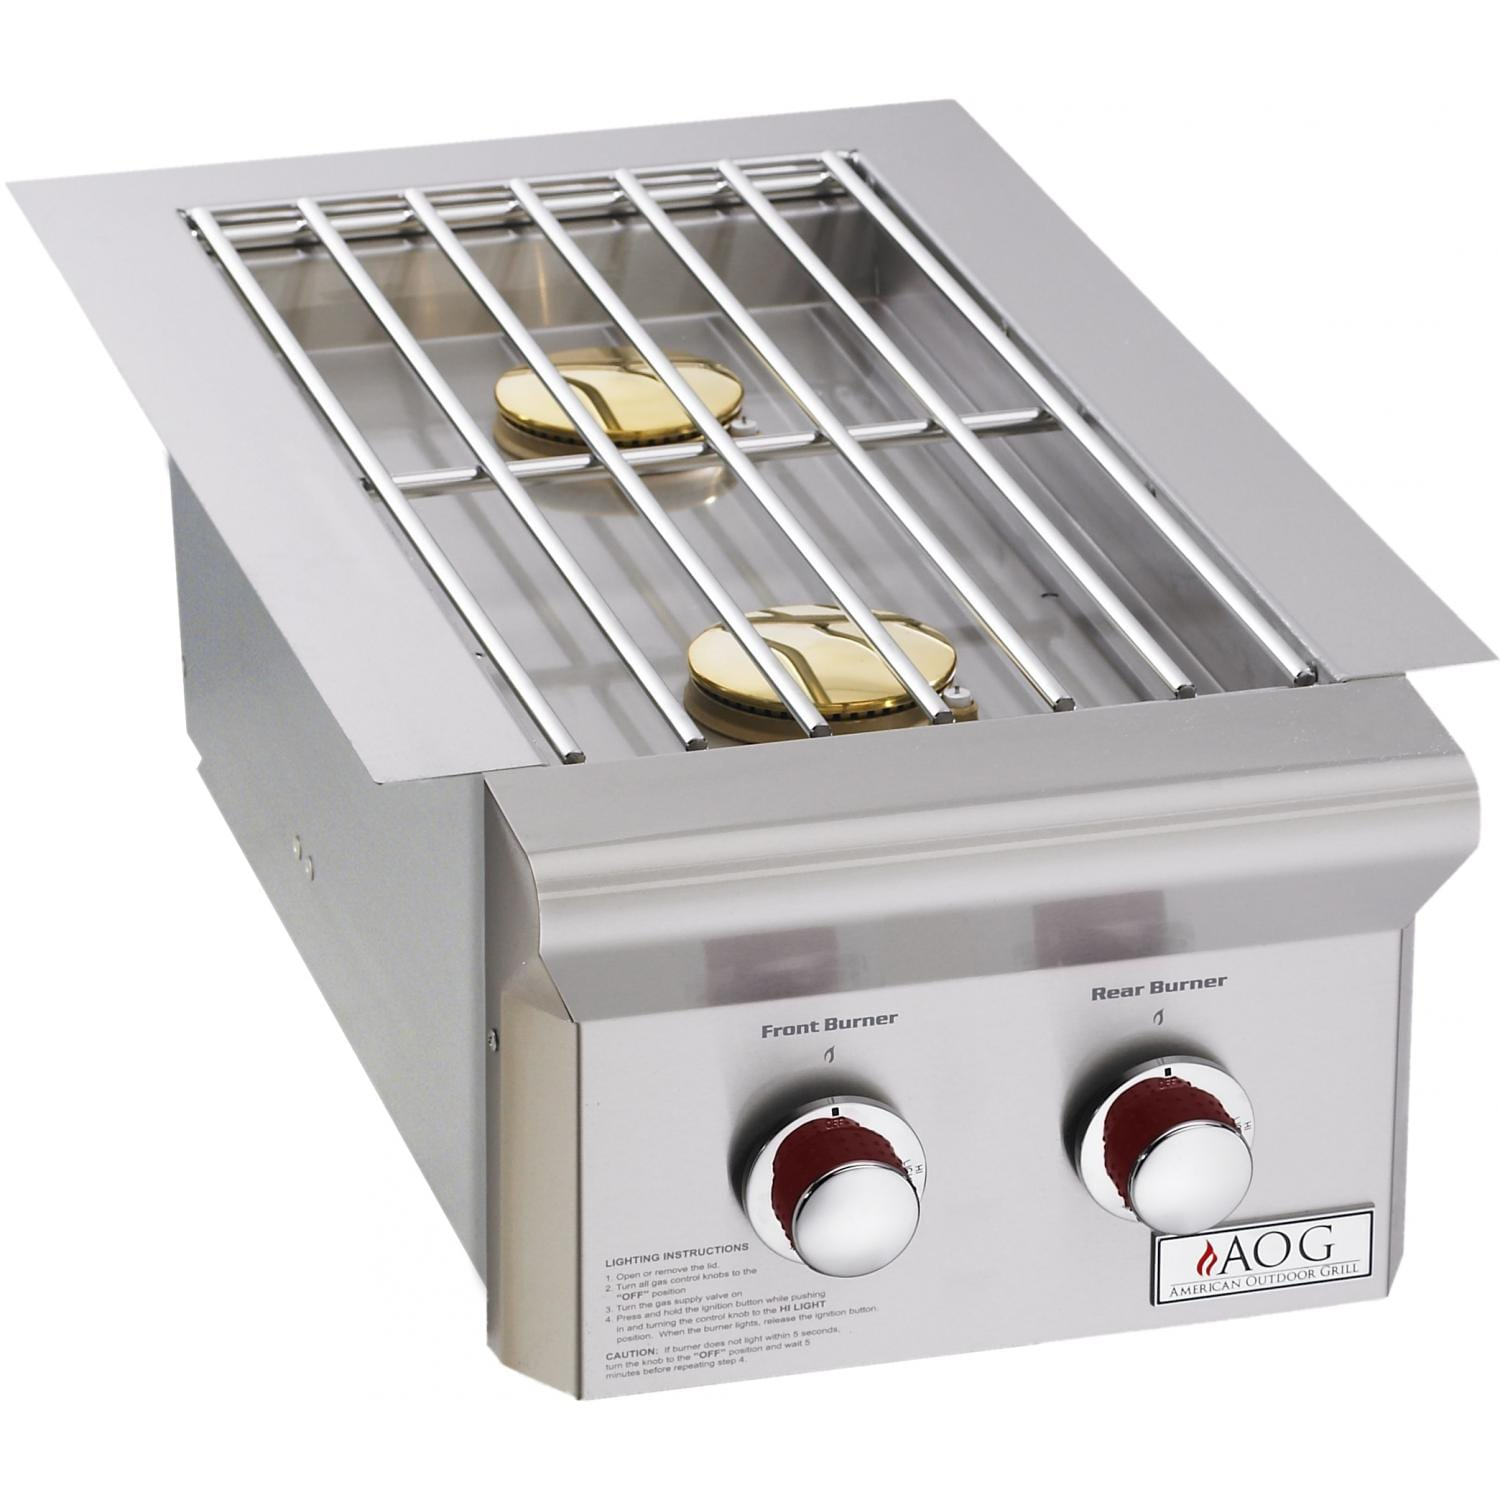 American Outdoor Grill T-Series Propane Gas Double Side Burner